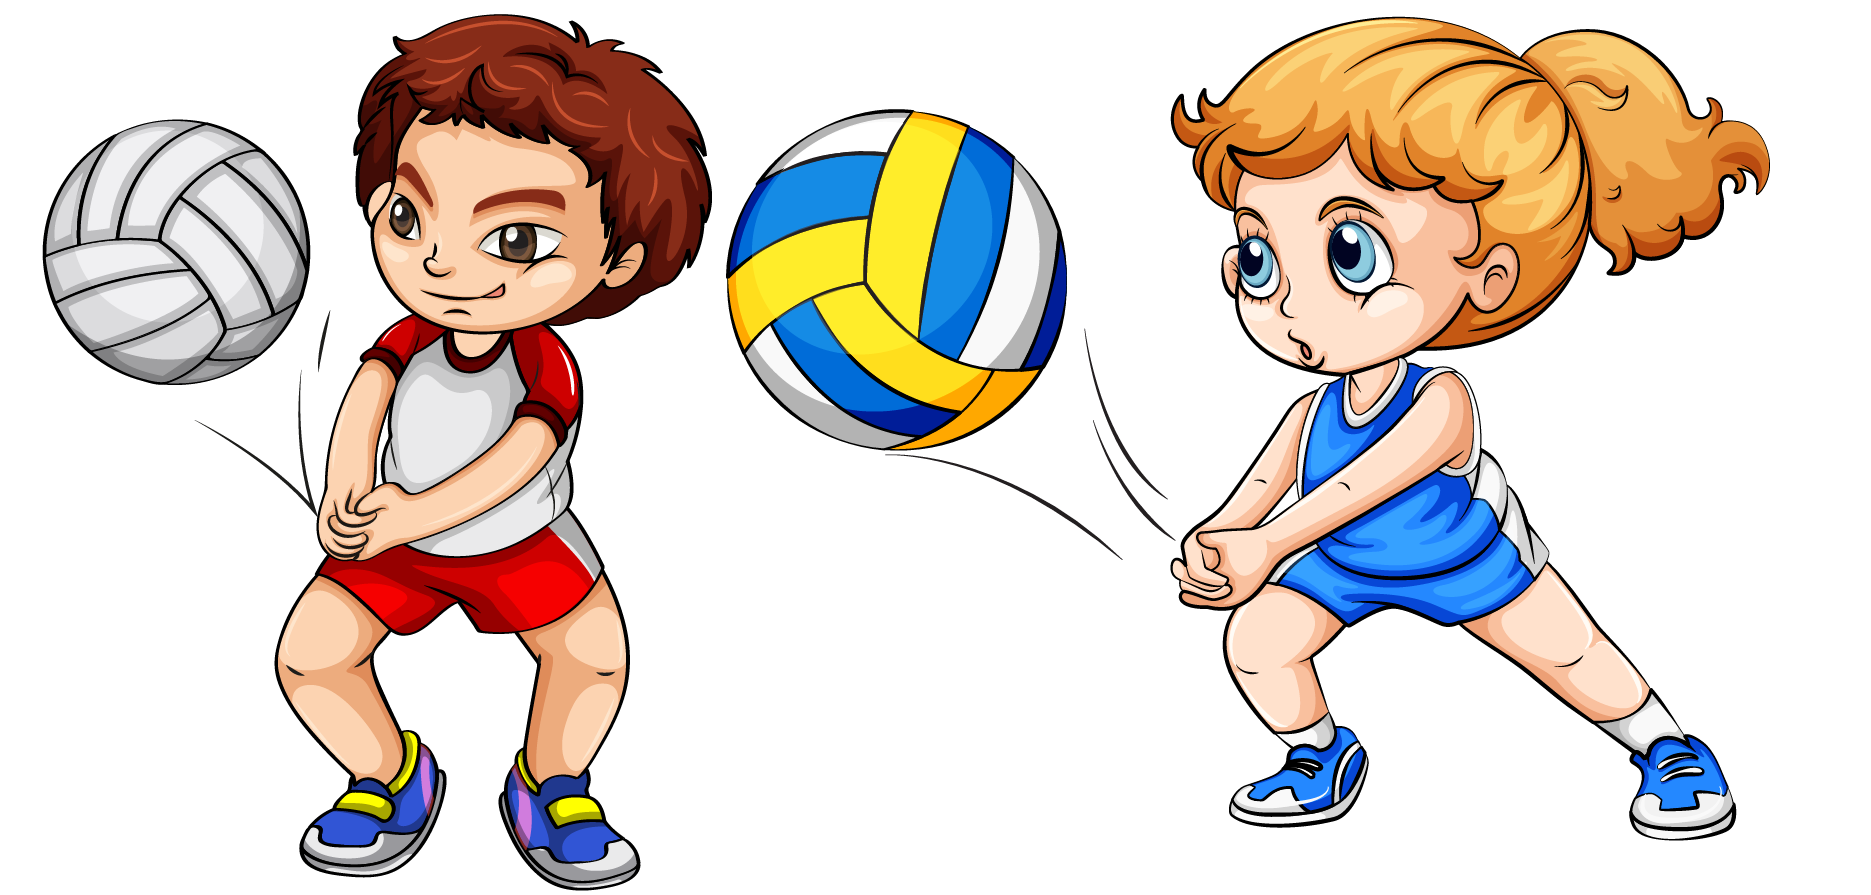 Children playing baseball clipart picture library Sport Volleyball Clip art - baseball 1871*895 transprent Png Free ... picture library